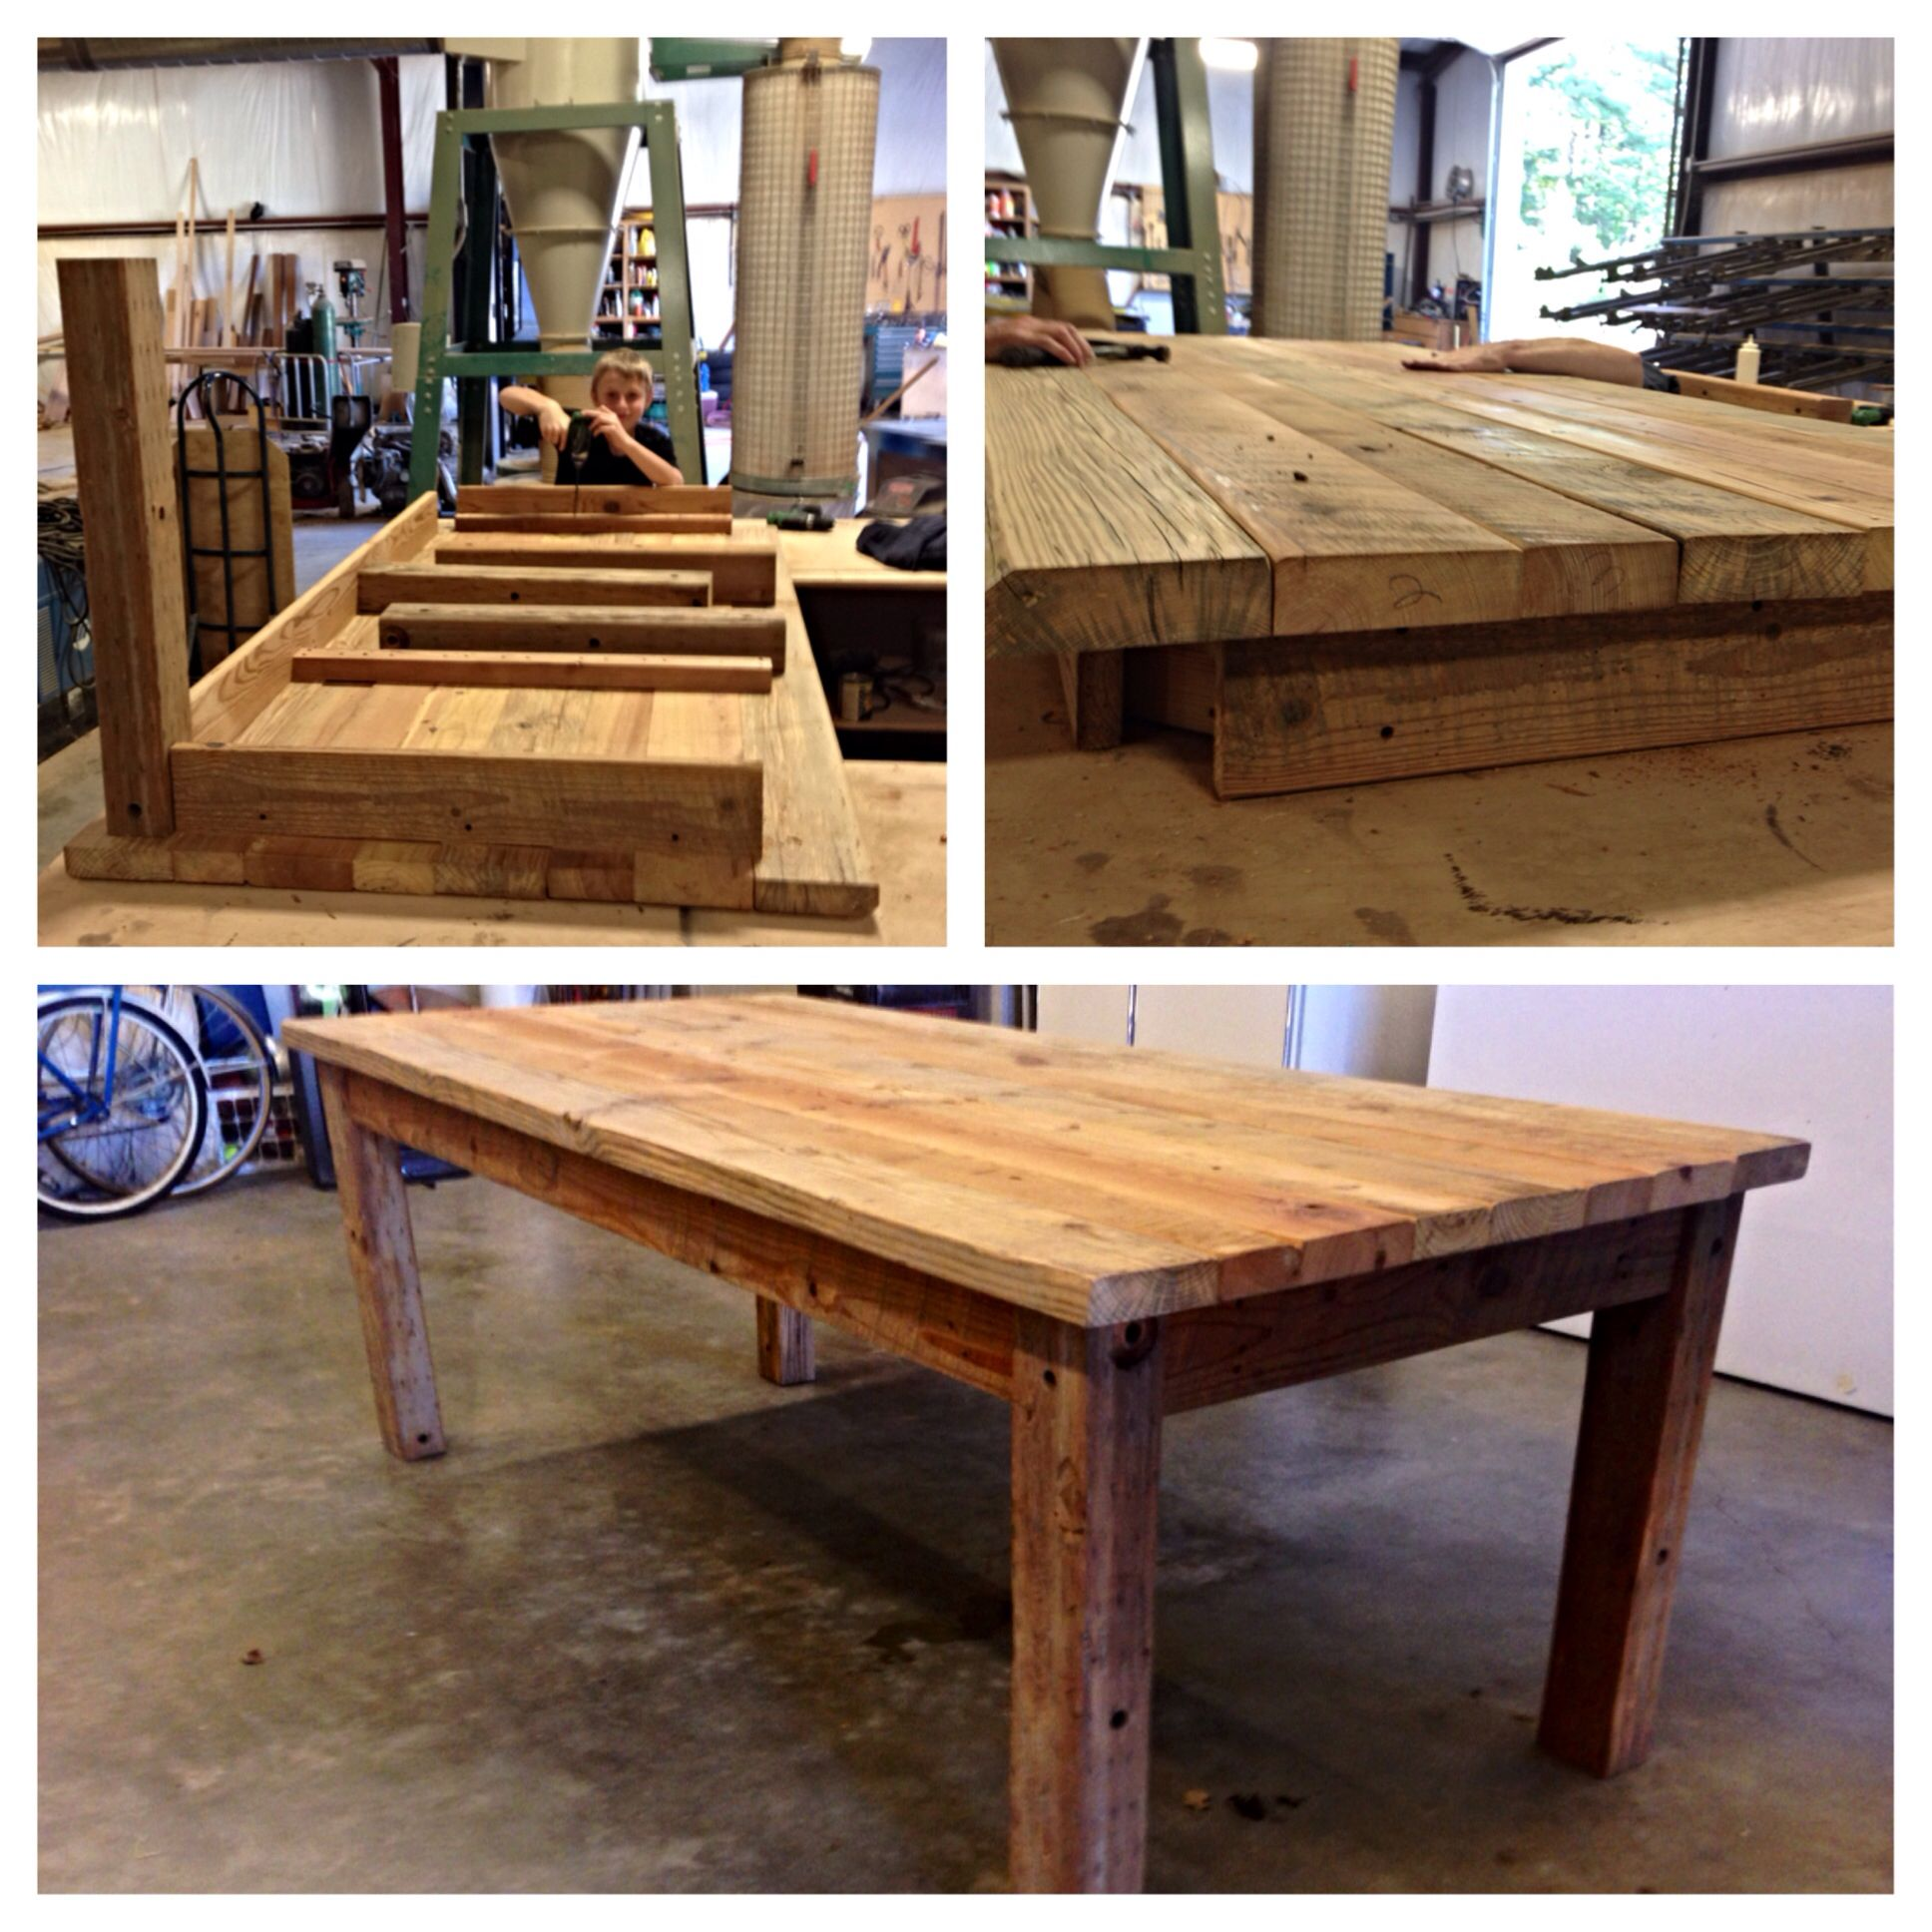 Built a reclaimed barn wood table. 7ft long x 3\u00274\